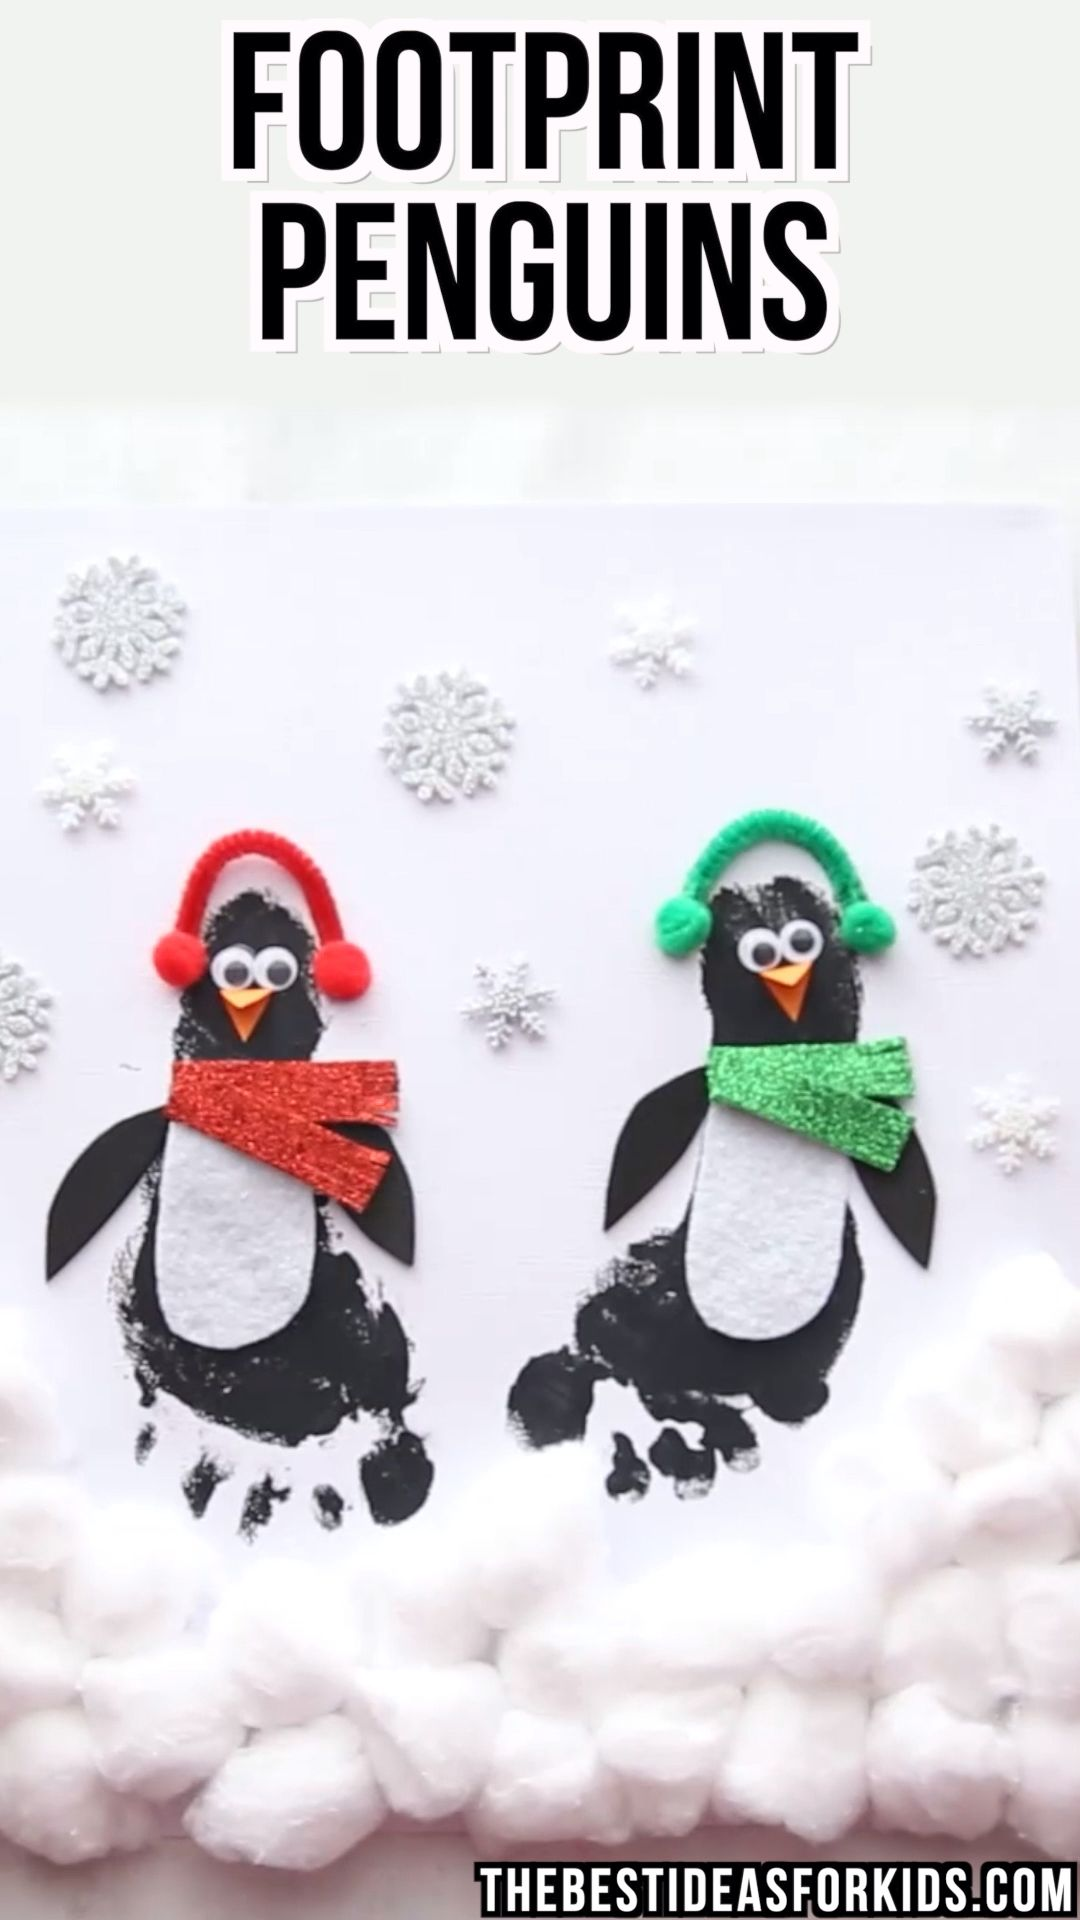 Footprint Penguins  - these are too cute! An adorable winter craft for kids. #bestideasforkids